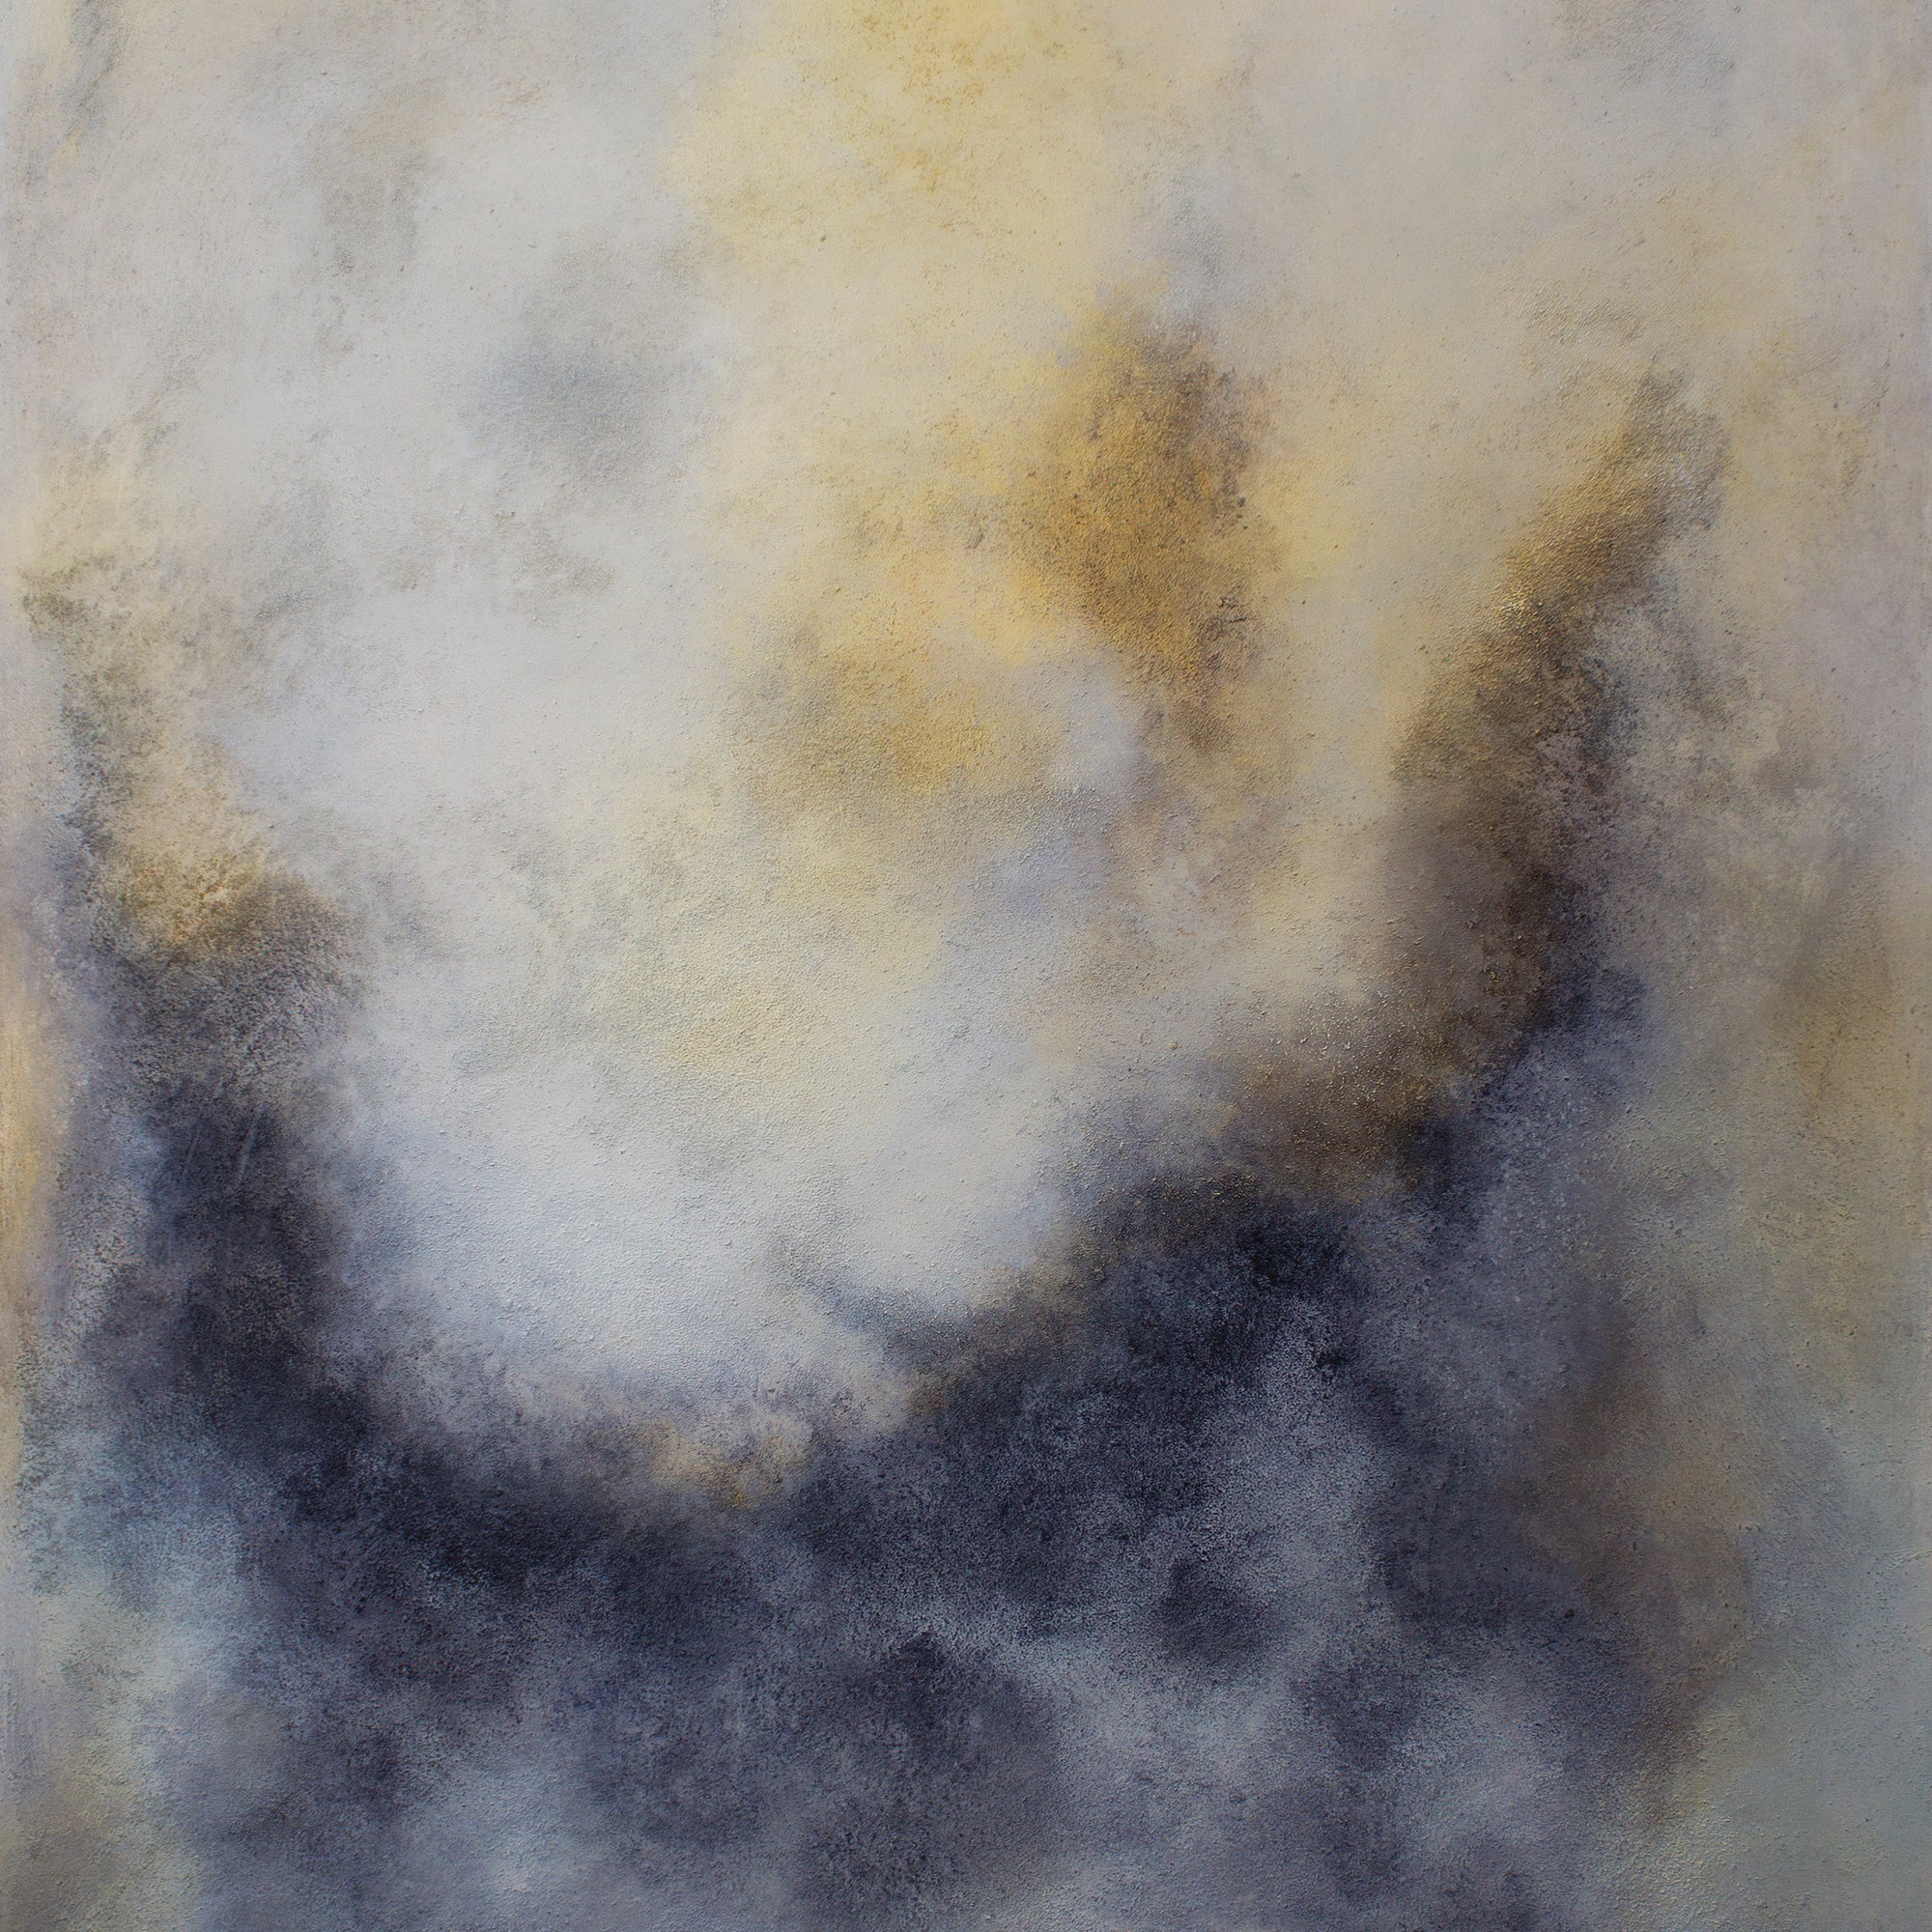 """Flickering"" by Francesca Borgo 